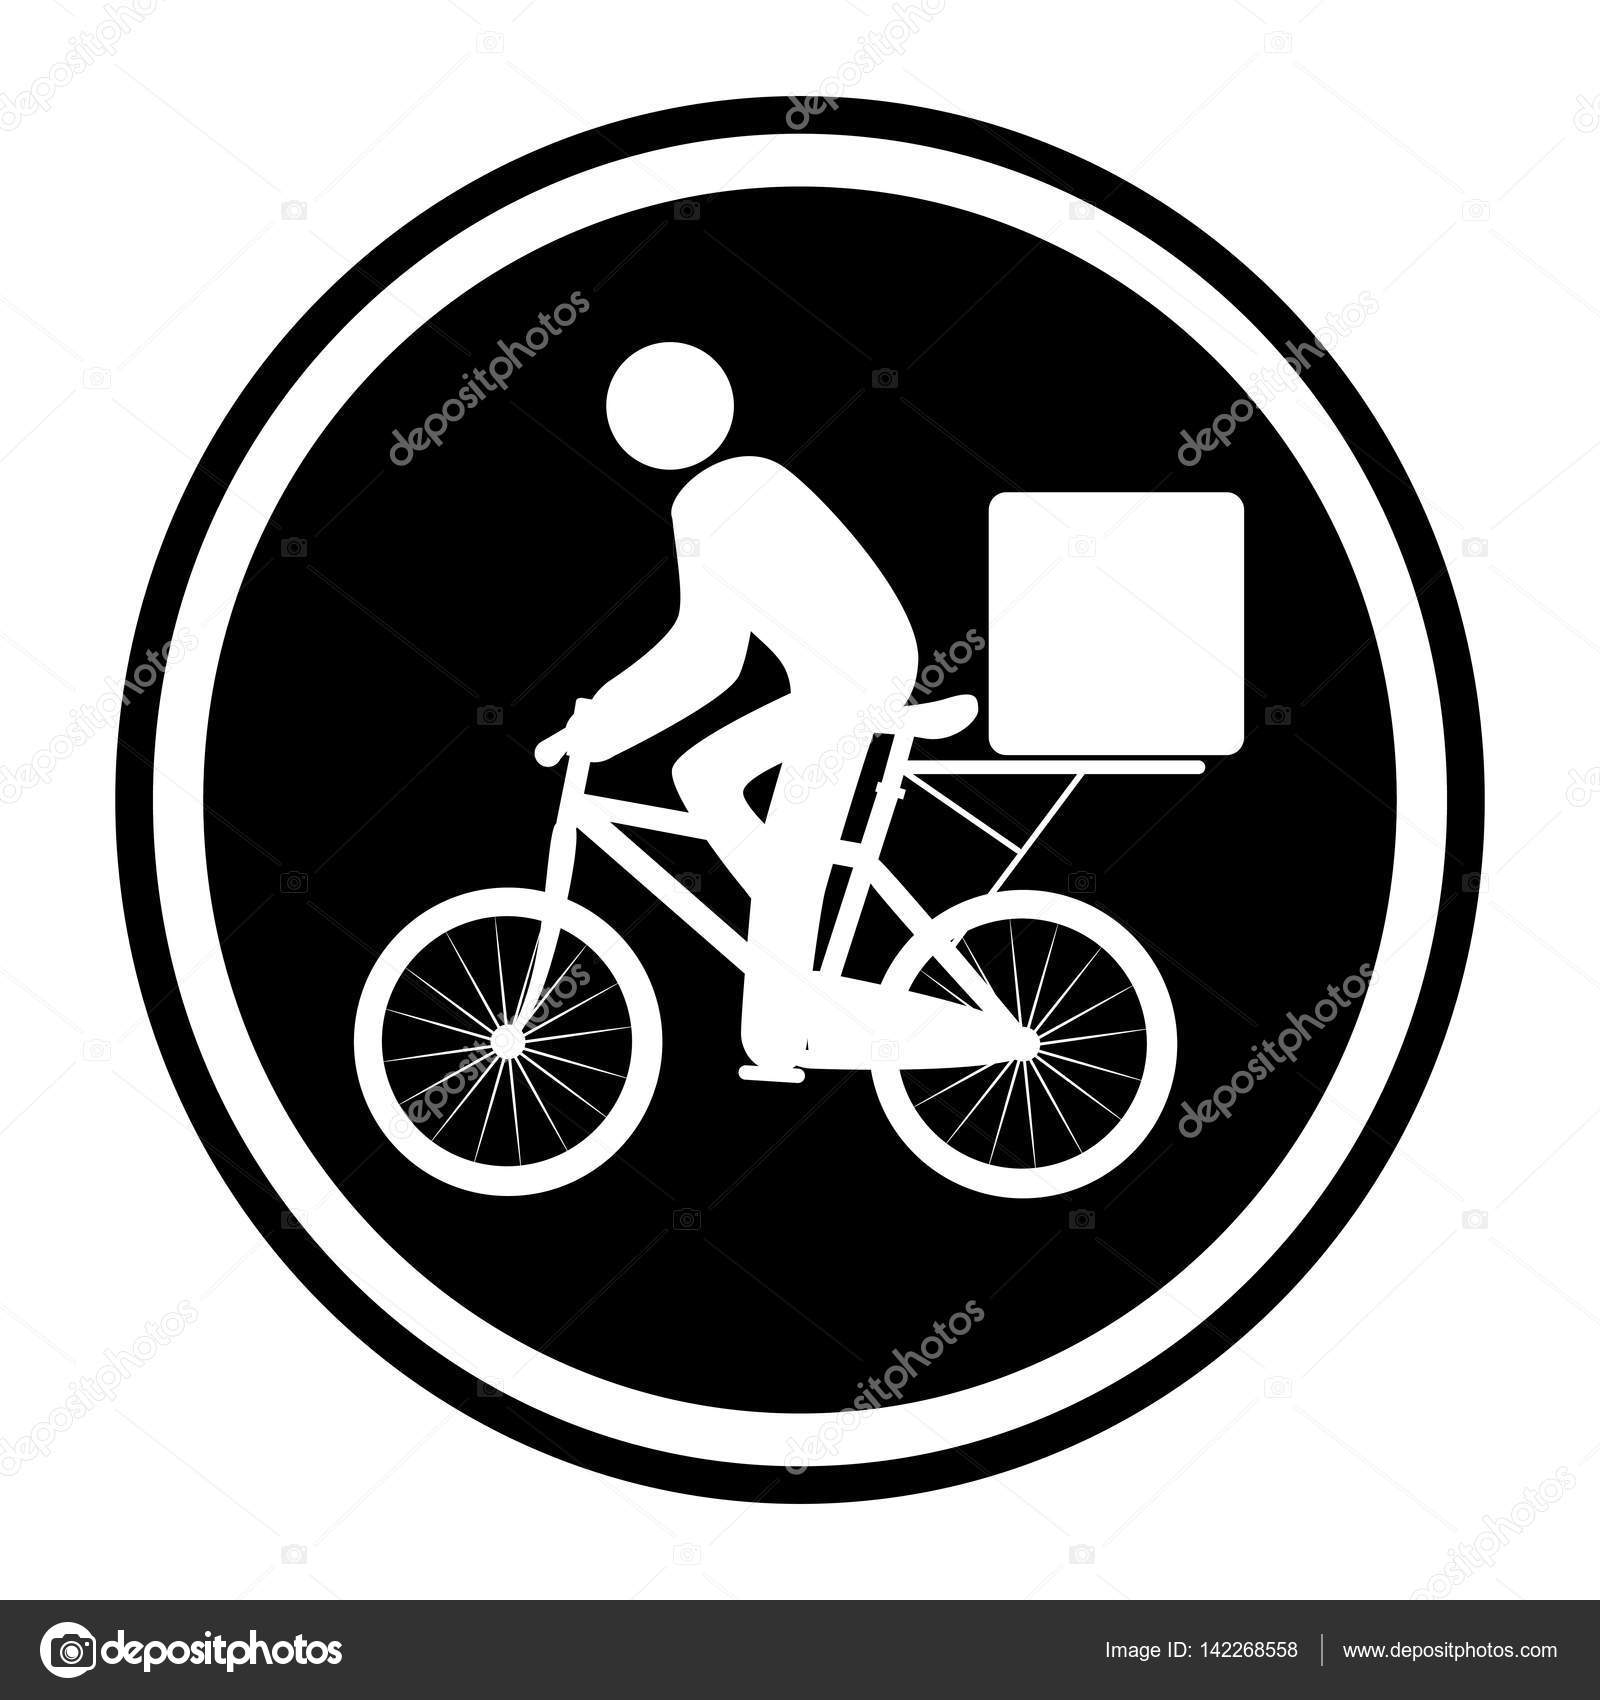 Monochrome Circular Emblem With Delivery Man In Bike Stock